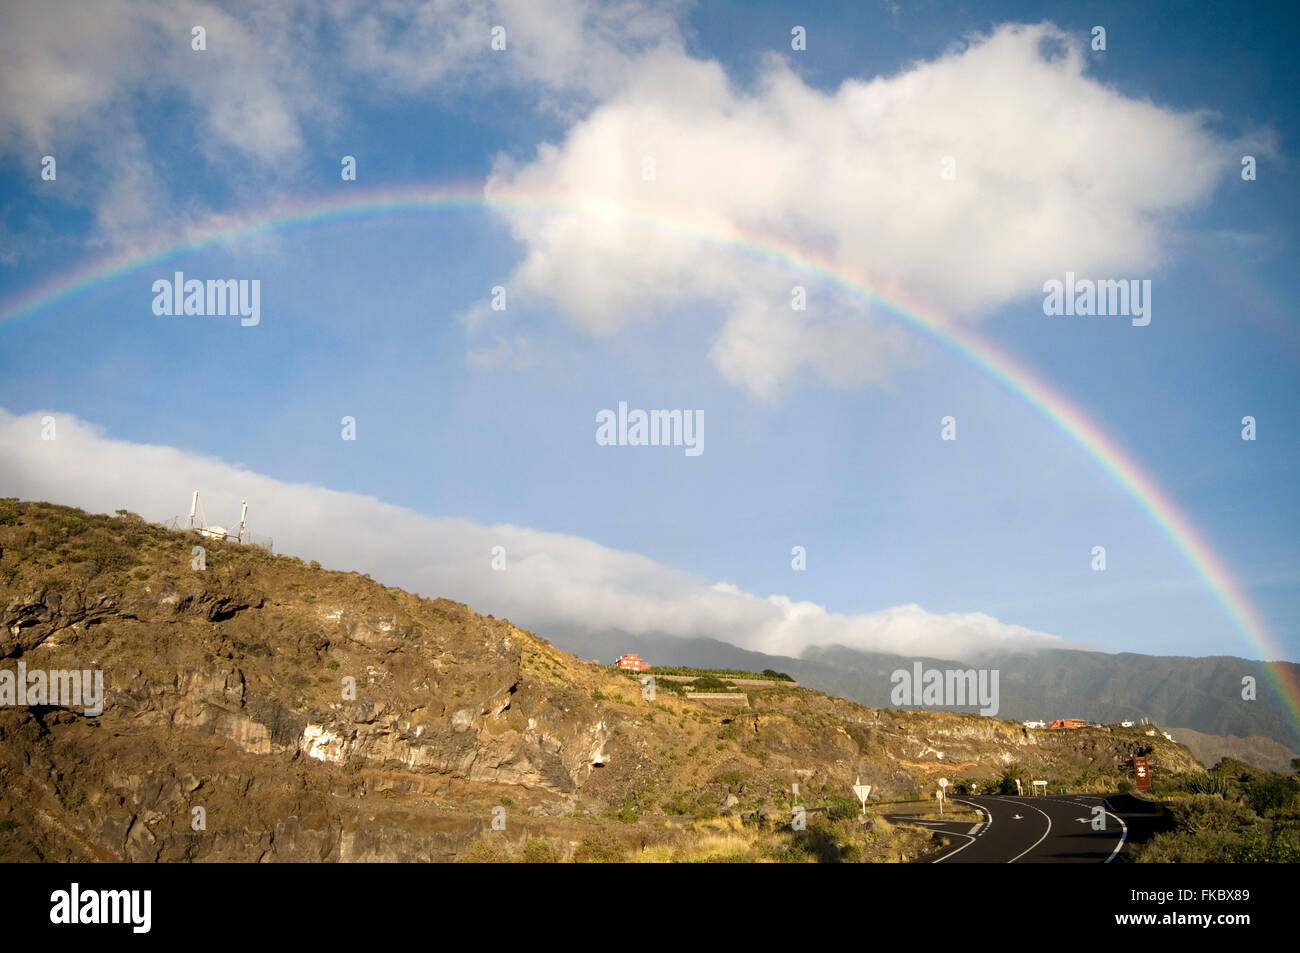 rainbow rainbows water refraction retracted light index complete arch arches light splitting in to separate wavelengths - Stock Image